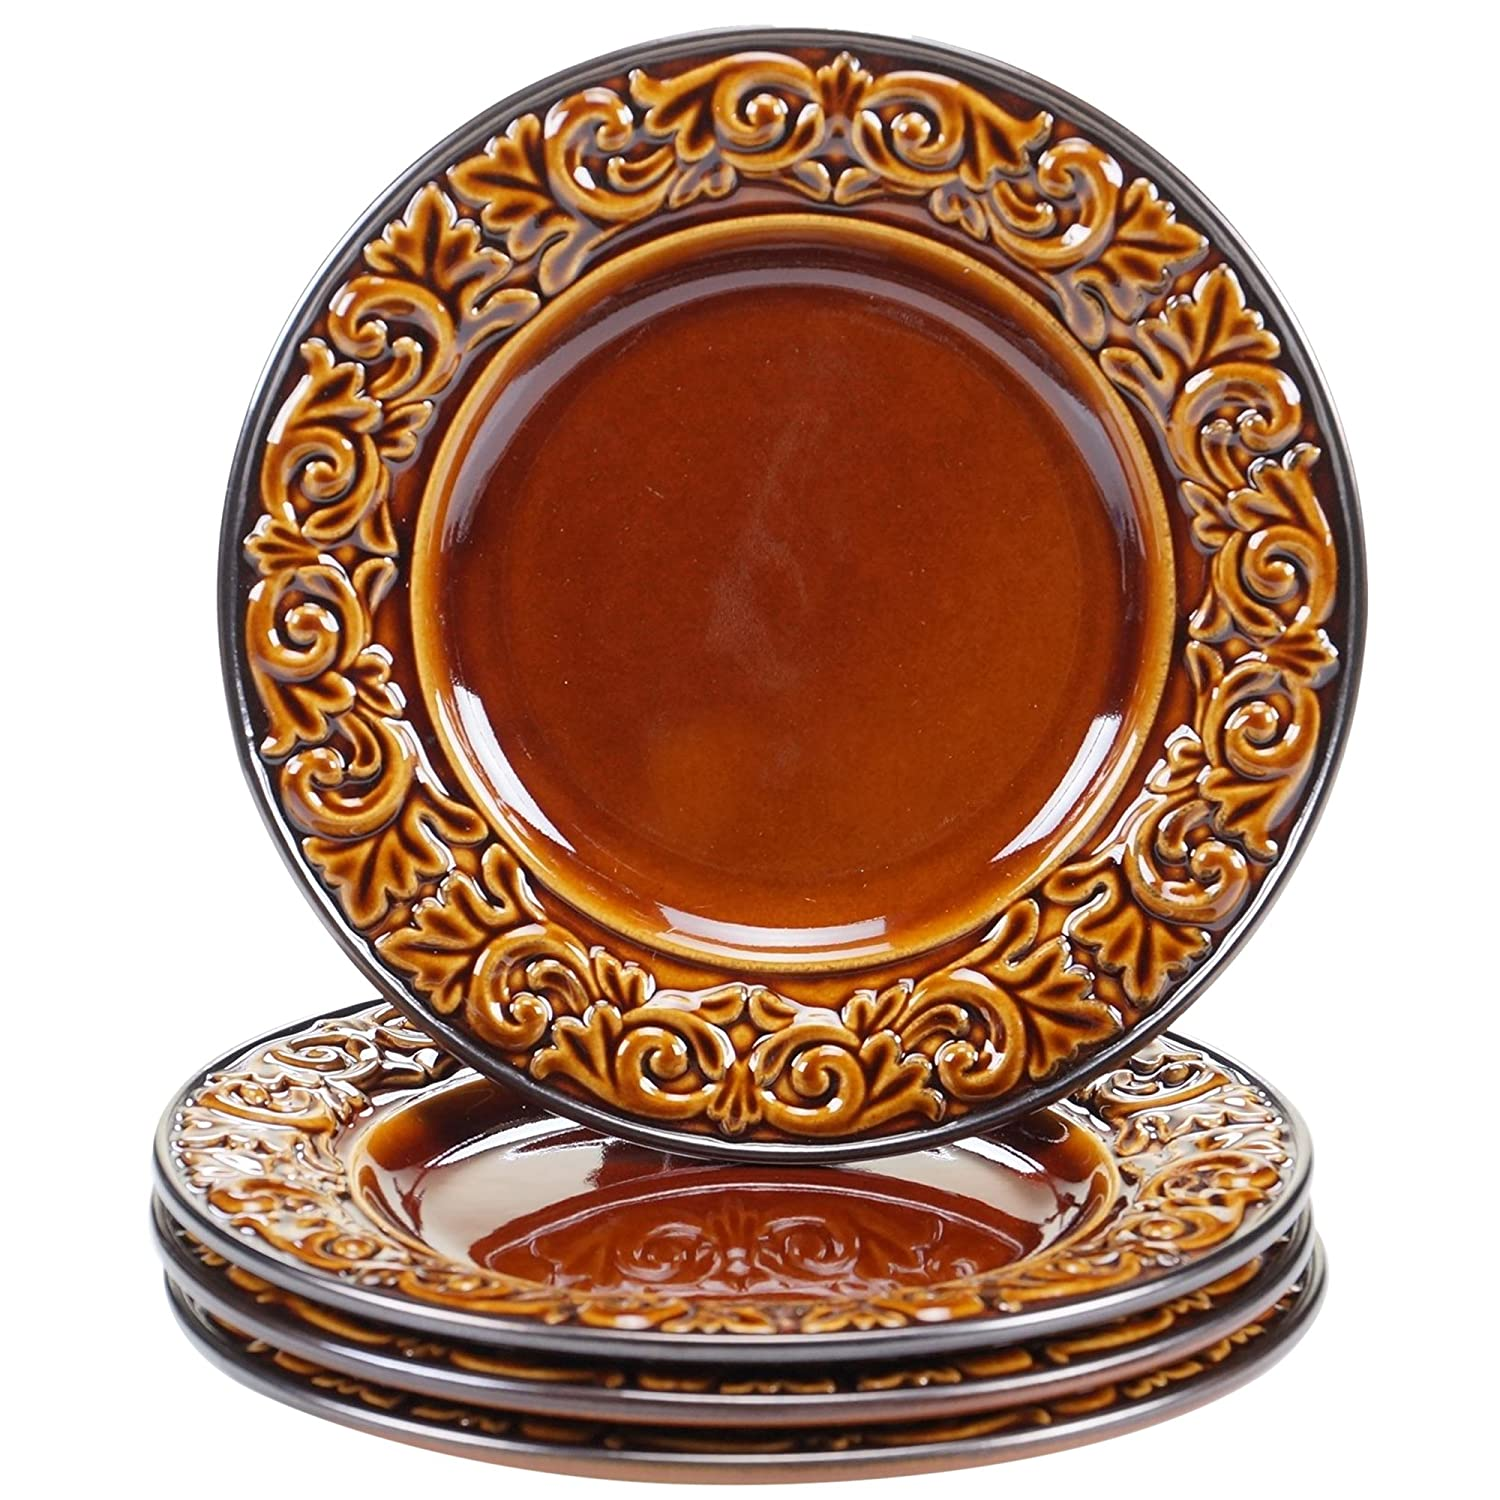 Certified International 57626SET/4 Solstice Dessert Plates (Set of 4), 8.75-Inch, Brown